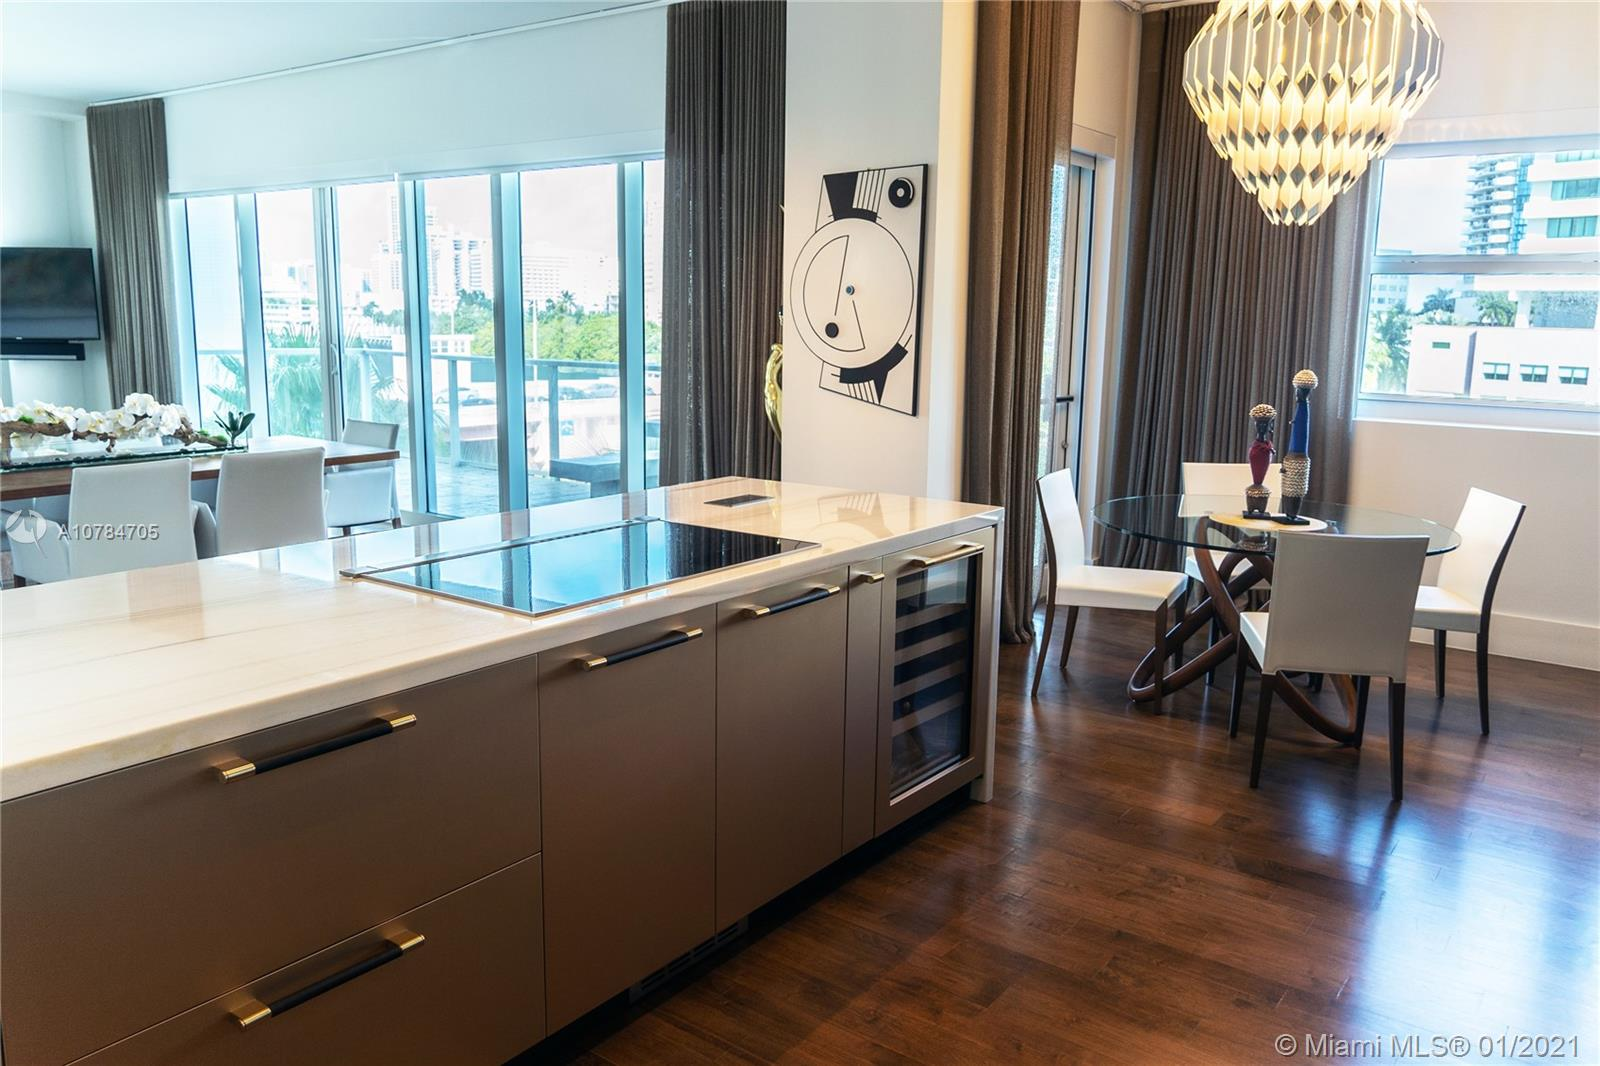 Exceptionally designed with beautifully renovated interiors, this spacious corner 2-bedrooms, 2.5-bathrooms condo embodies prime Allison Island living. The residence features intercostal views and top of the line finishes such as:  brand new Ornare Kitchen with Miele appliances and Thermador downdraft hood, wine cellar, wood floors throughout, Spanish porcelain in master bathroom floors and walls, Built-in Ornare master closet. Smart Centralized system for the lighting, motorized window shades, music and Tv's.  Surround sound and security cameras throughout the apartment.  Amenities include gated private island with two pools, private marina, business center, valet, state of the art gym, concierge and kids room.